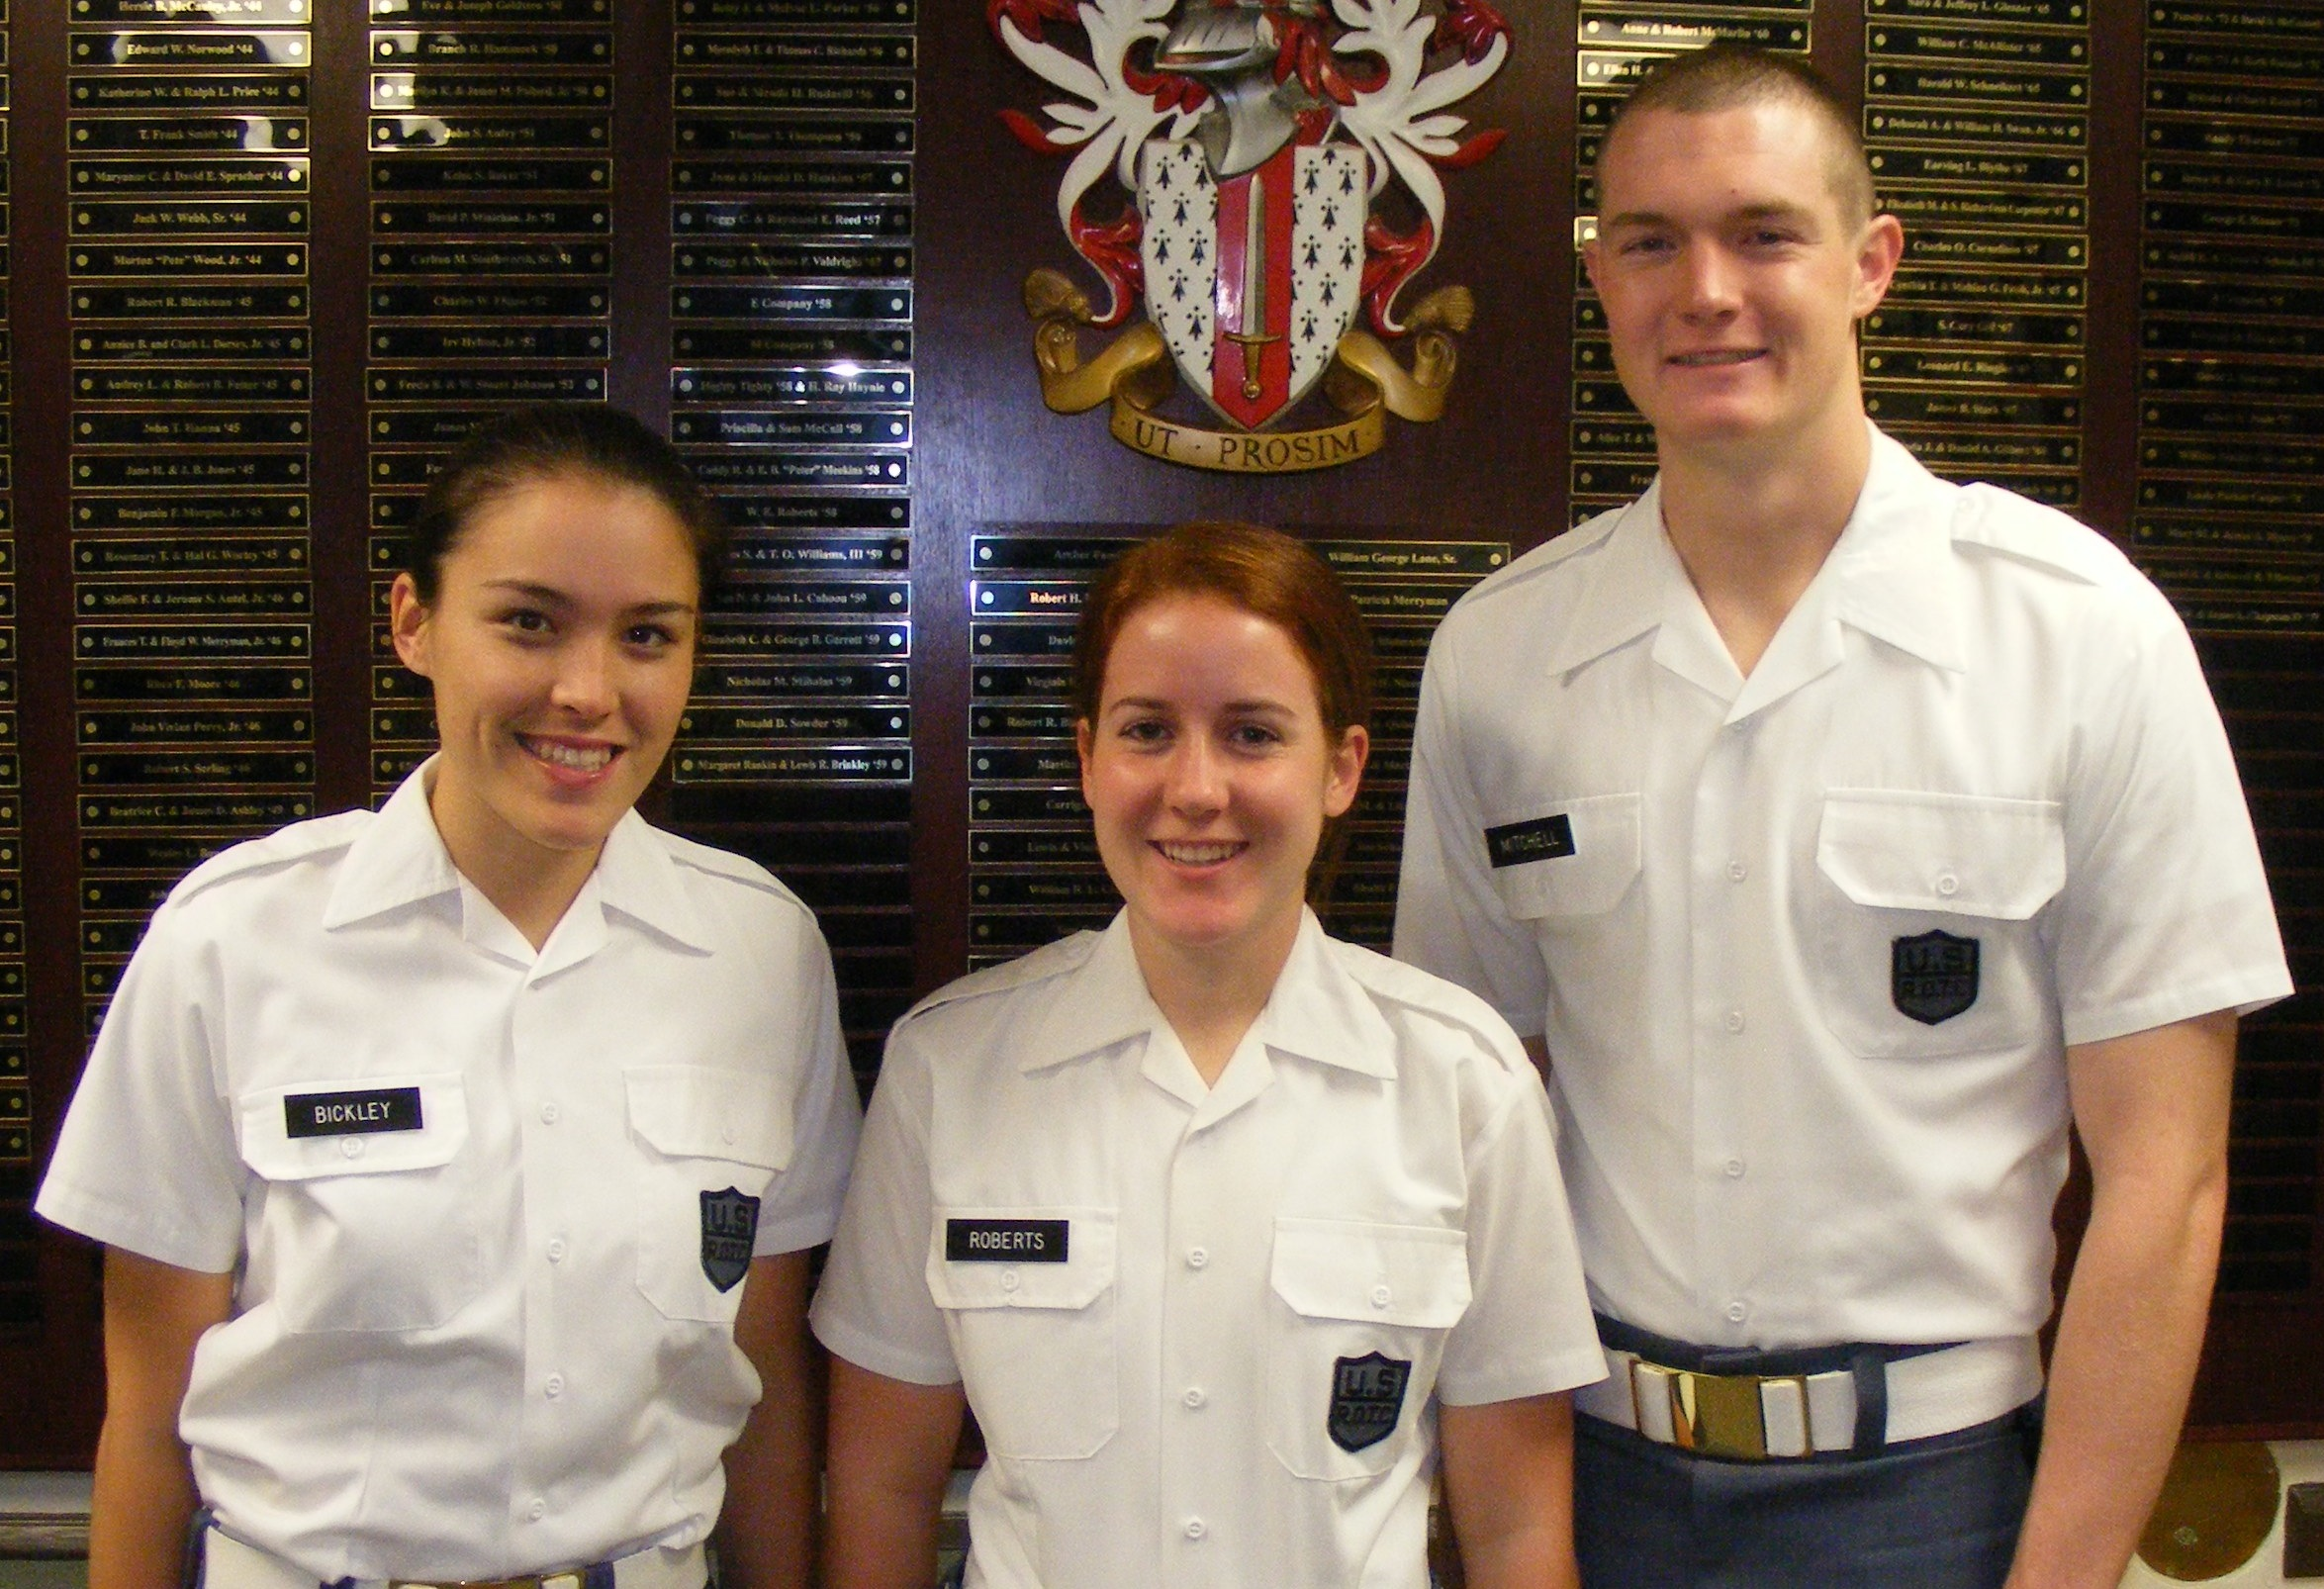 Cadets Amelia Bickley, Leah Roberts, and Carl Mitchell shown in Brodie Hall